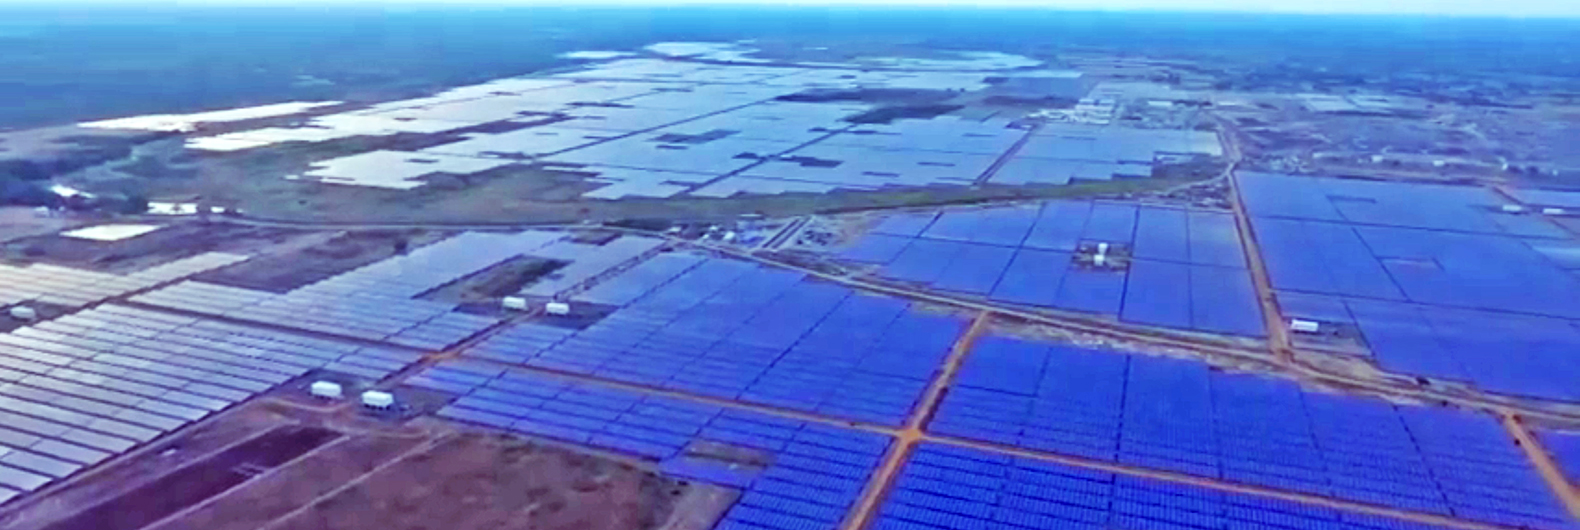 India just fired up the world's largest solar plant to power 150,000 homes